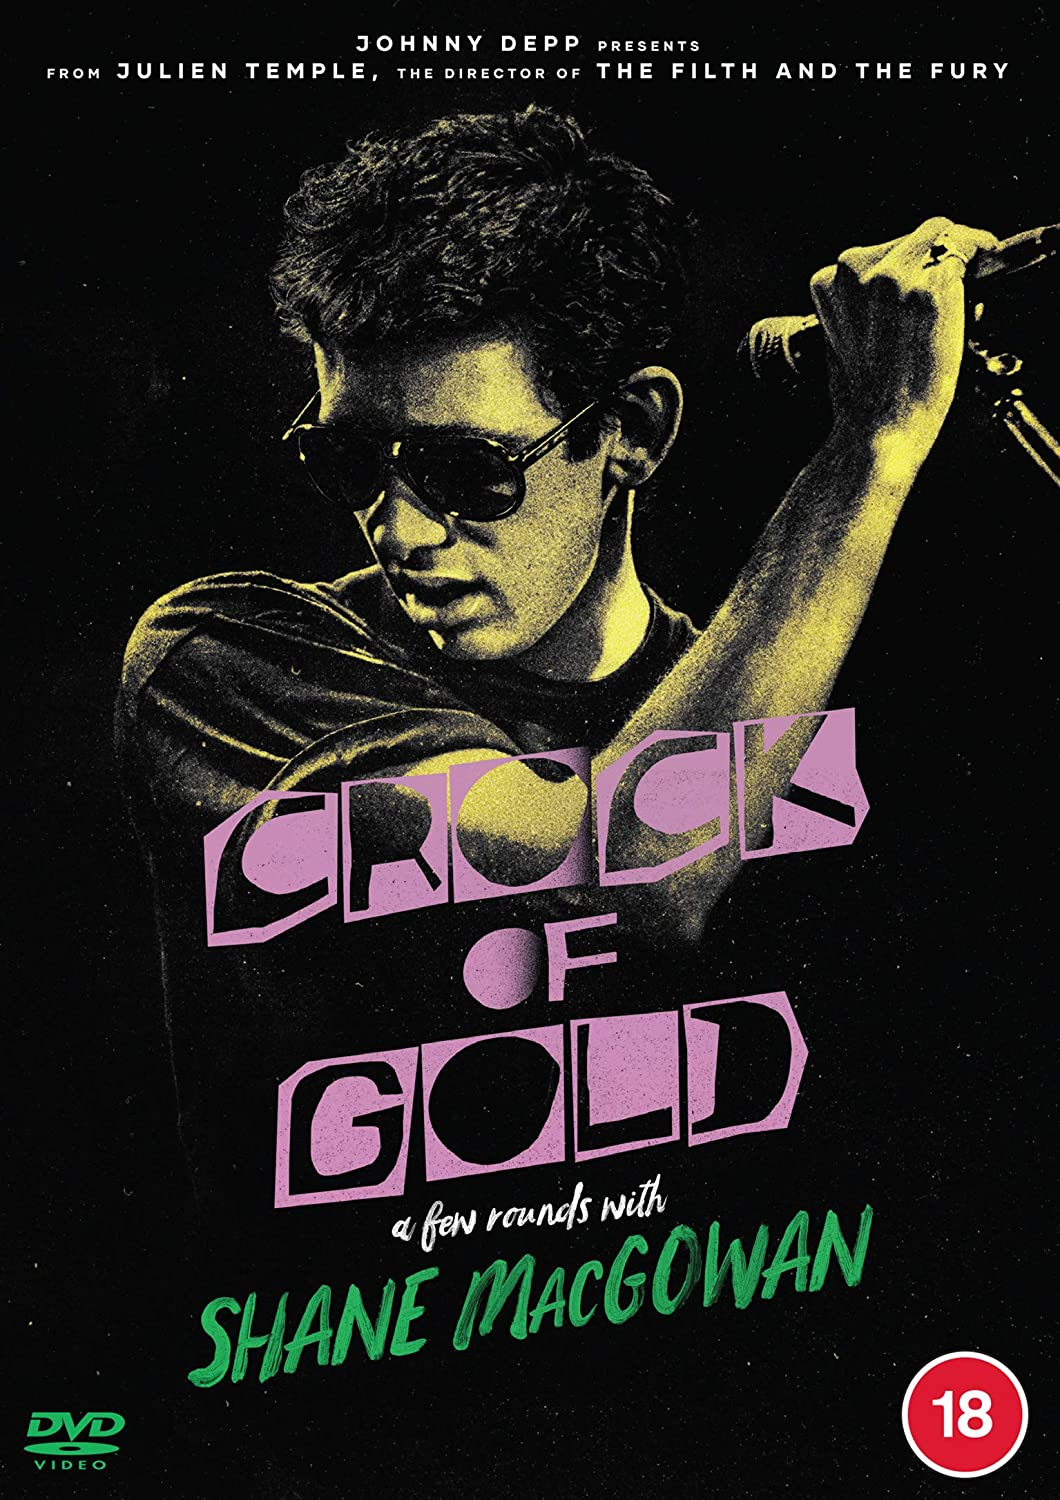 News – Crock of Gold – A Few Rounds with Shane MacGowan